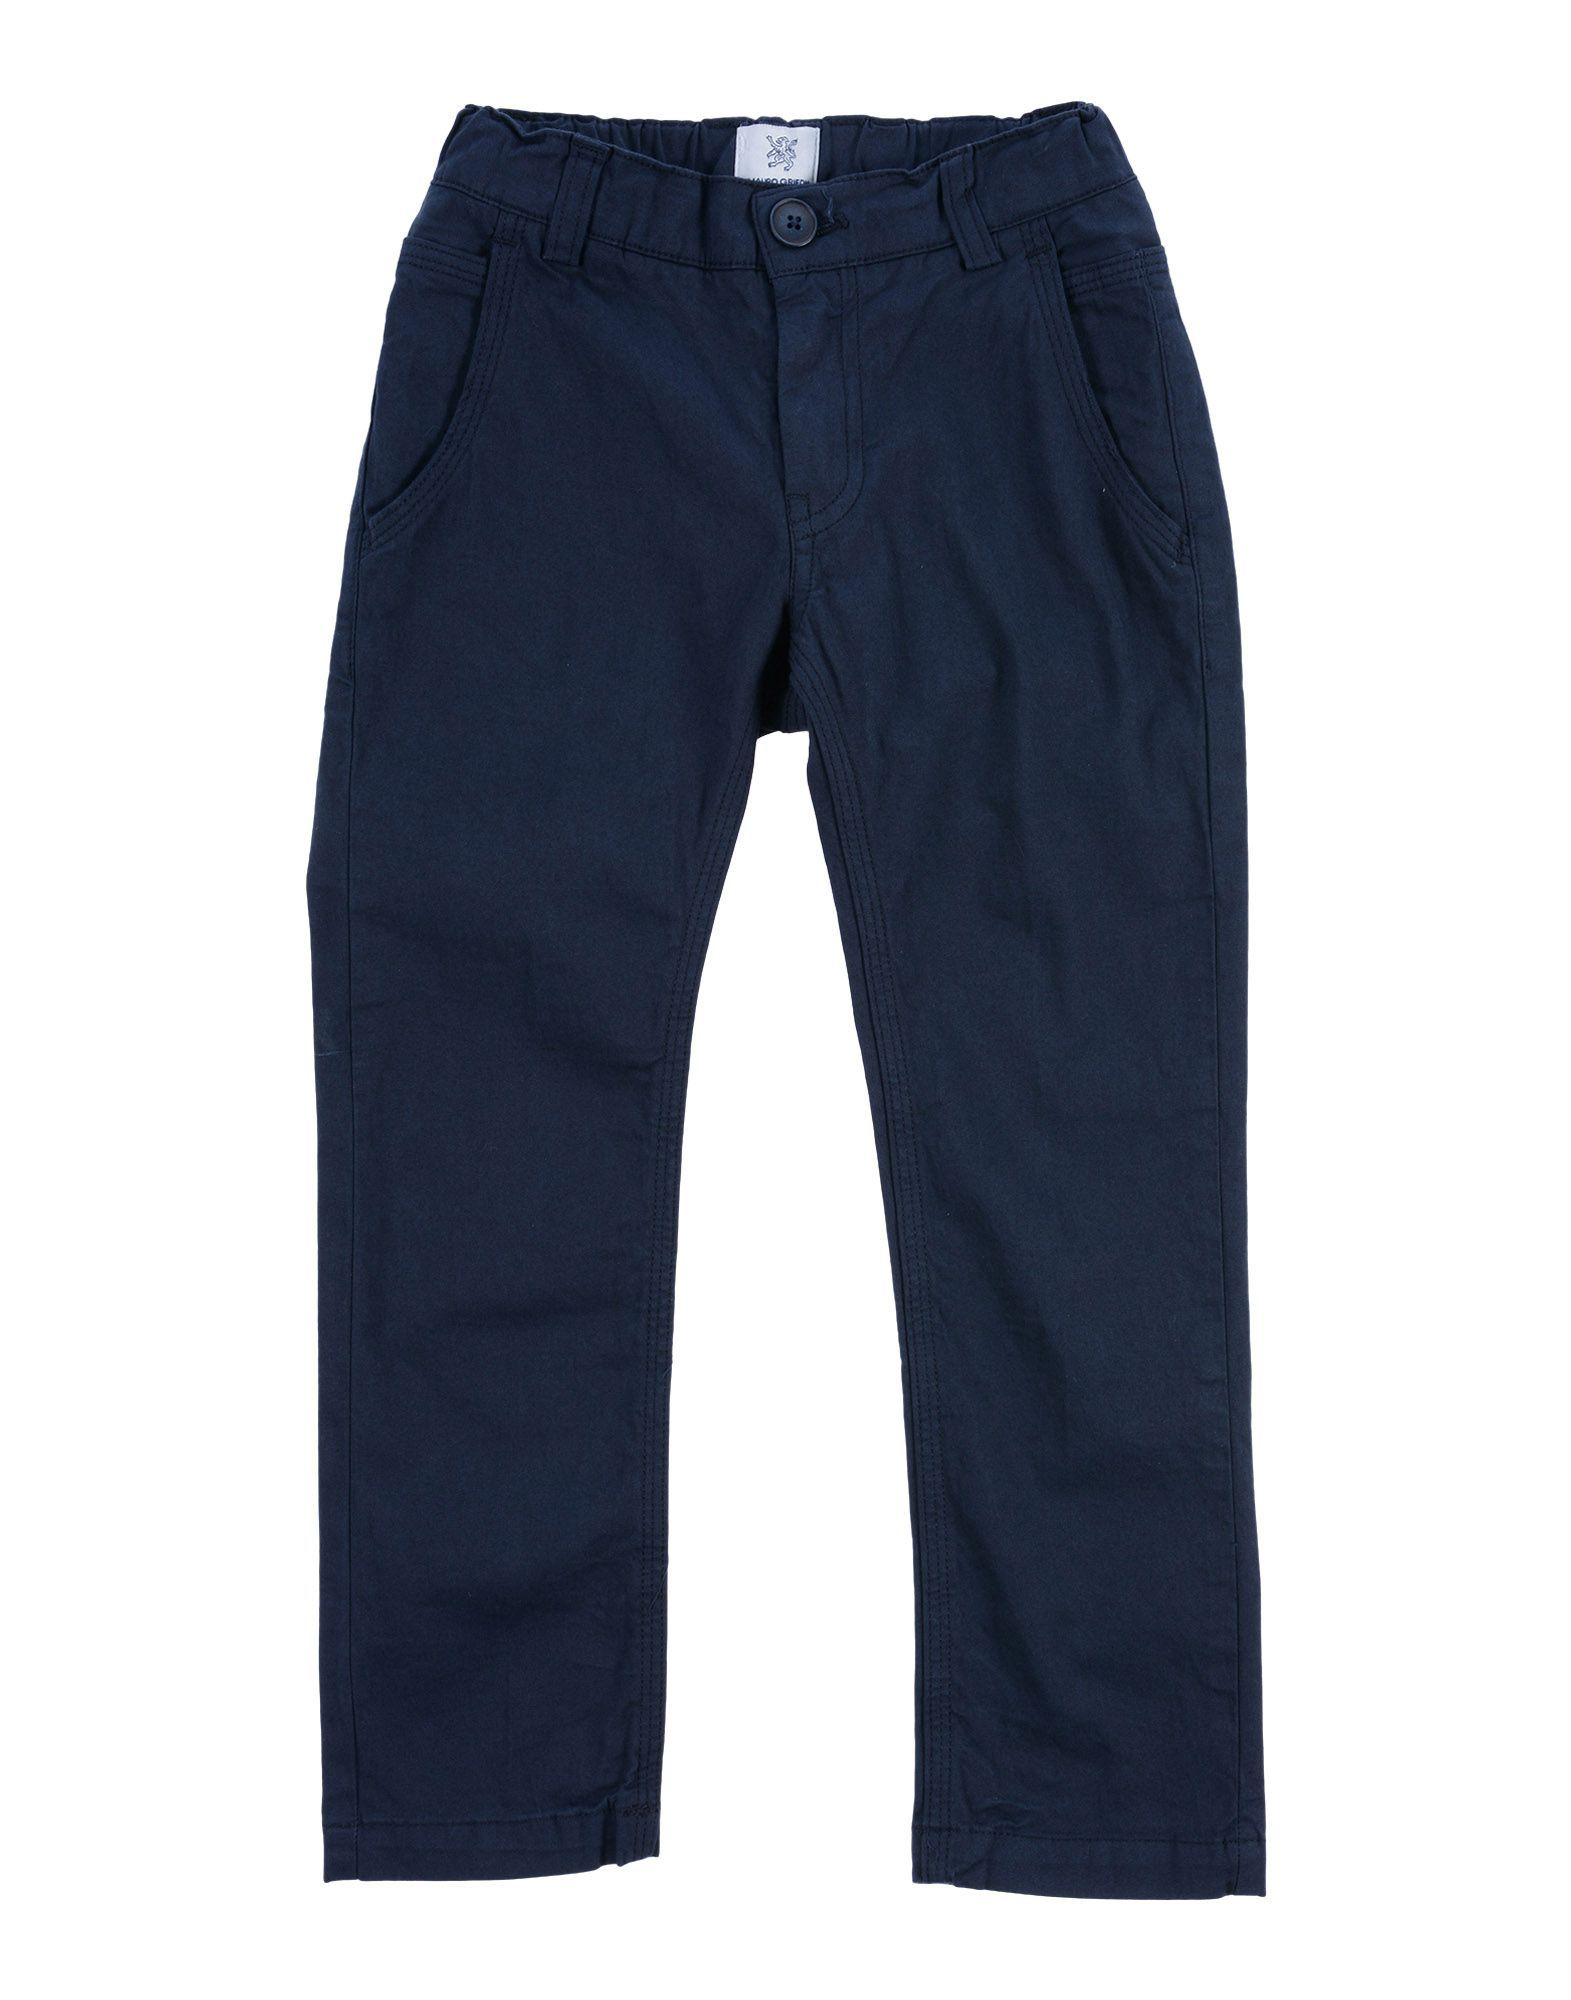 Mauro Grifoni Casual Trousers